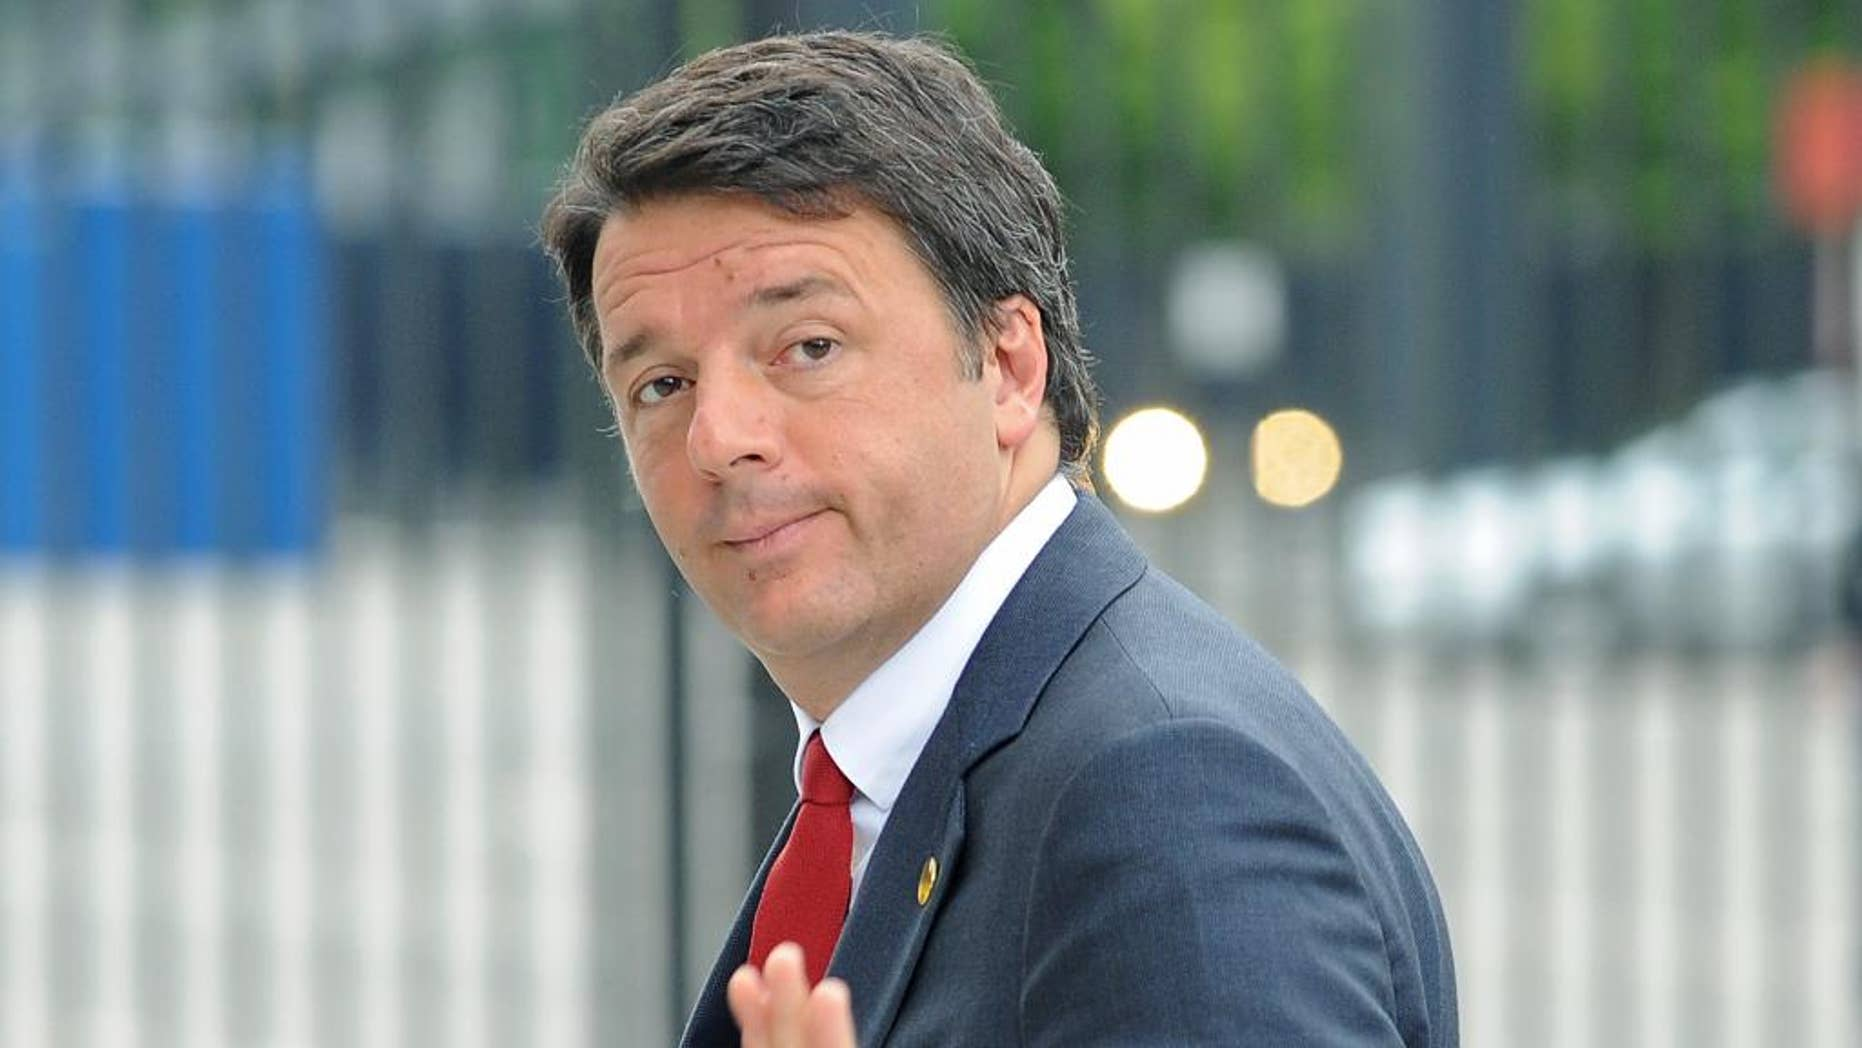 Italian Prime Minister Matteo Renzi arrives for sessions of the second day of the NATO Summit, in Warsaw, Poland, Saturday, July 9, 2016. US President Barack Obama and leaders of the 27 other NATO countries are taking decisions in Warsaw on how to deal with a resurgent Russia, violent extremist organizations like the Islamic State, attacks in cyberspace and other menaces to allies' security. (AP Photo/Alik Keplicz)